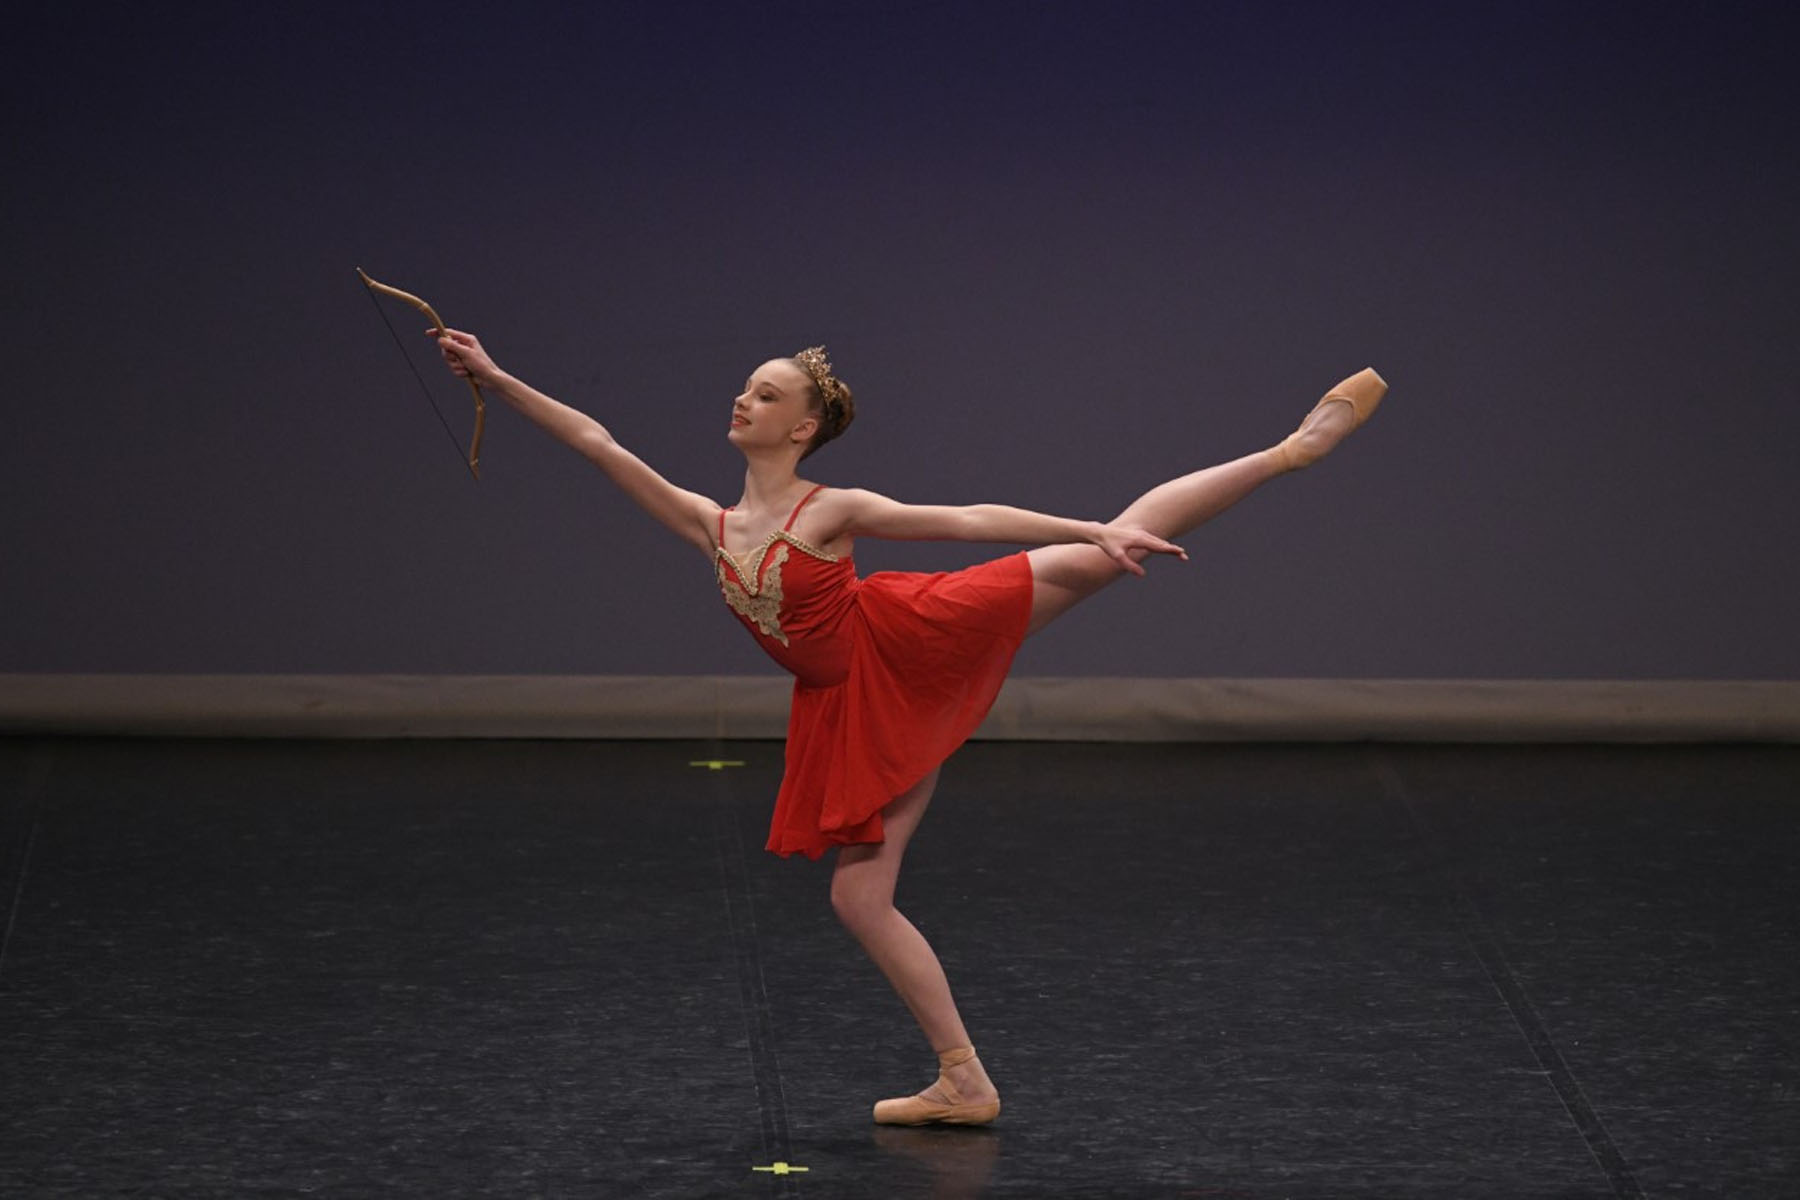 Ballet dancer performing on stage holding a bow